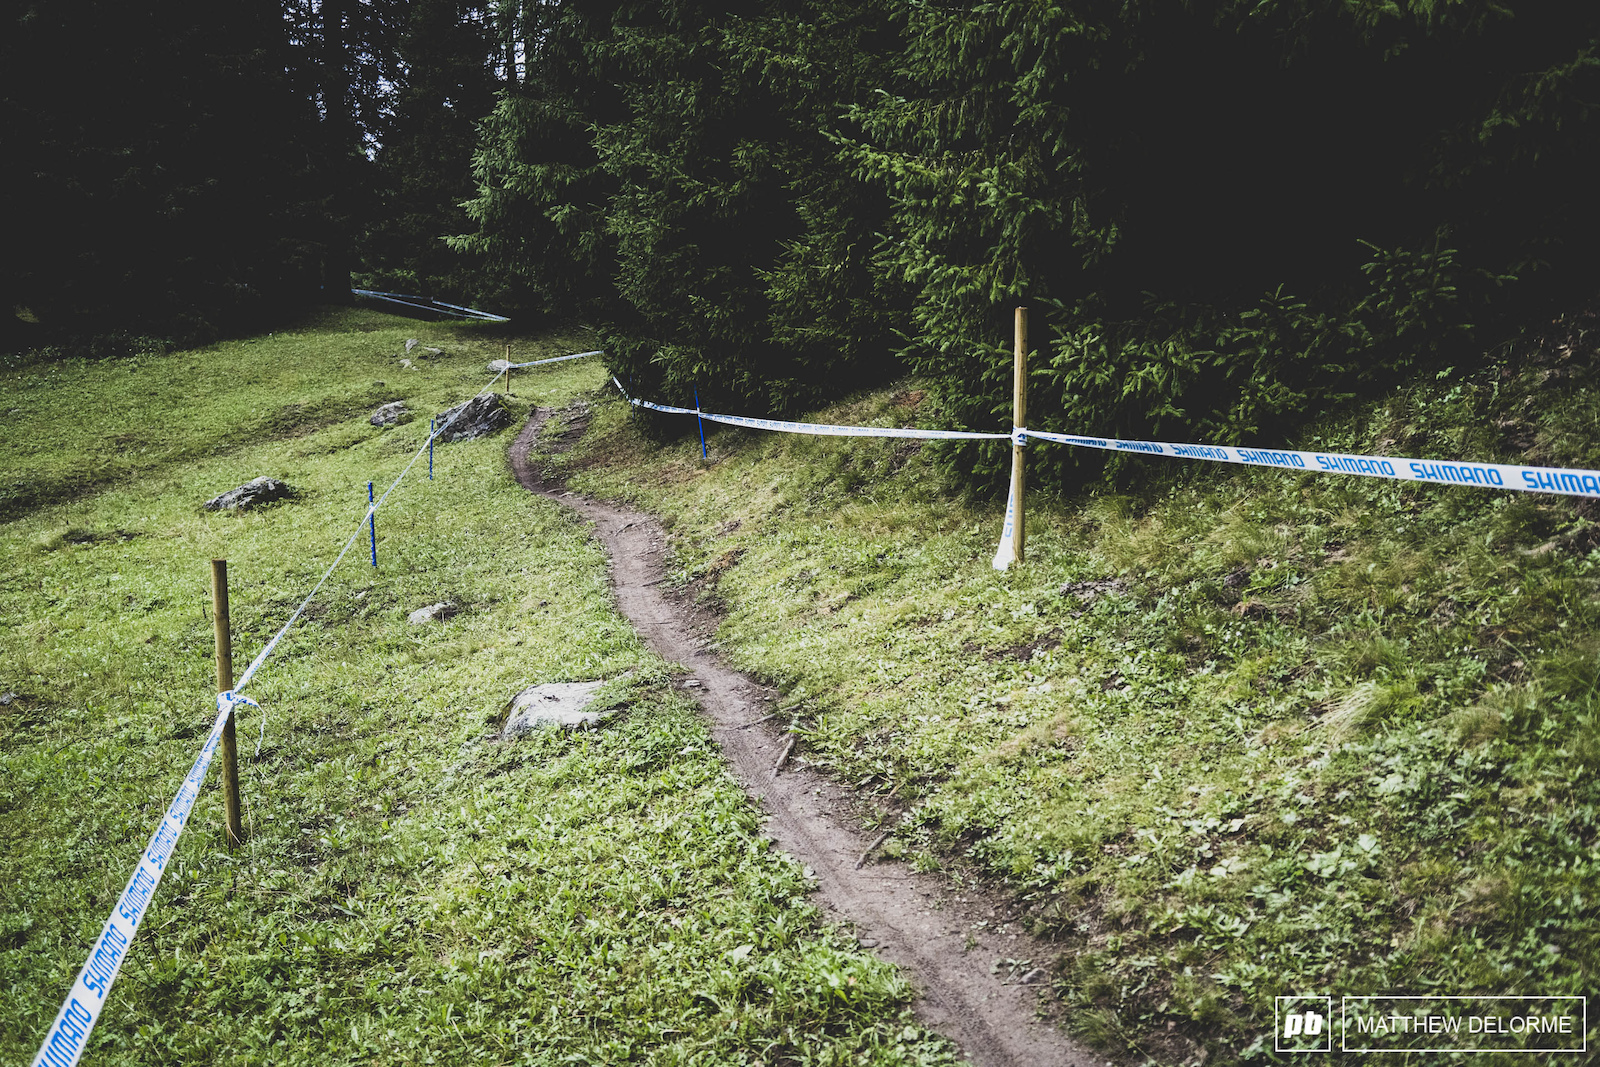 Thin Ribbons of single track with room to pass in the grass. There are cow pies though.